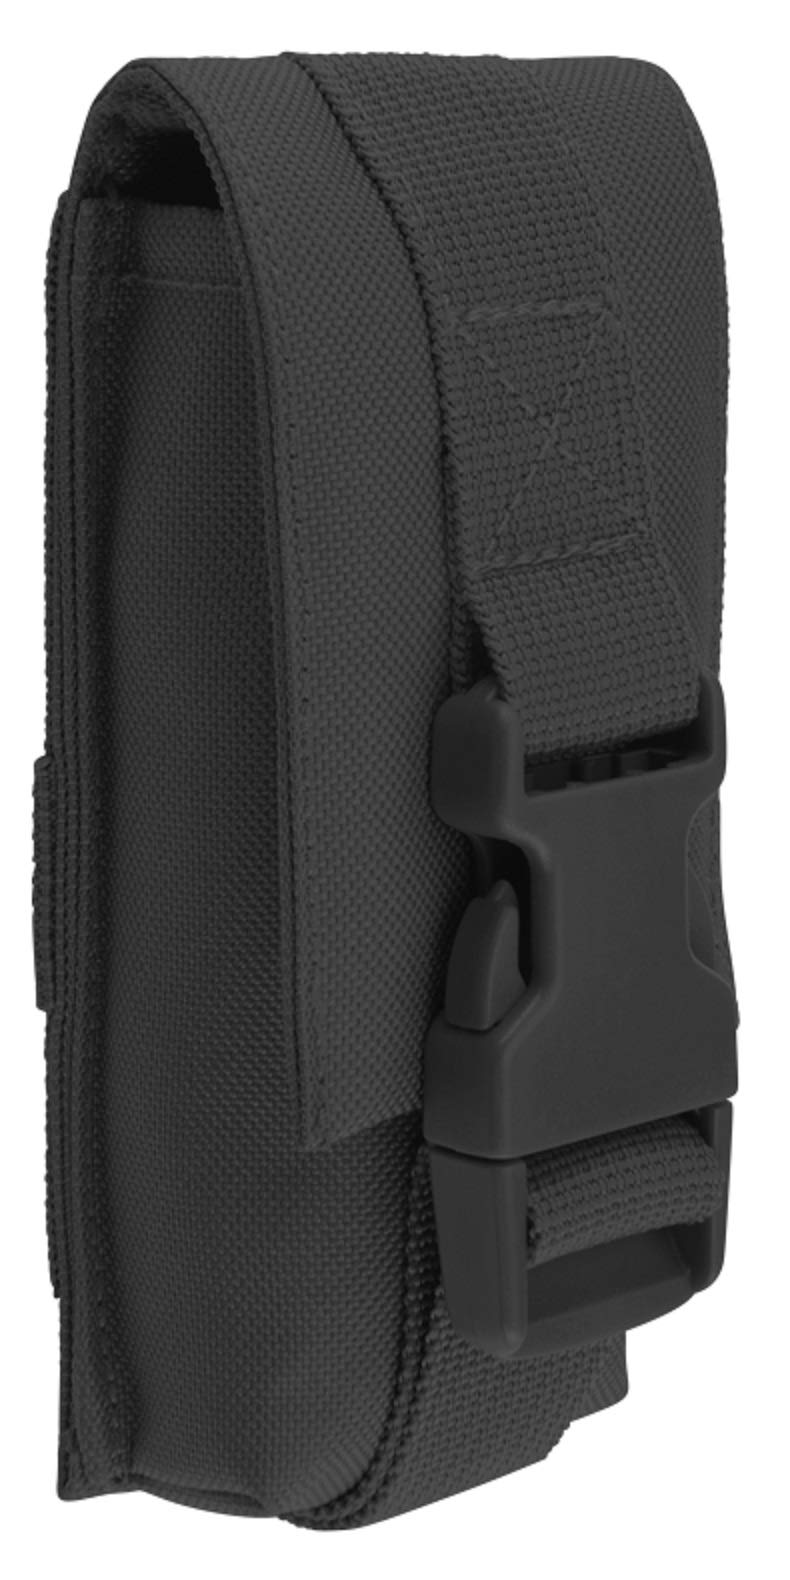 61qdoVejhwL - Brandit Molle Multi Pouches - Belt Bags, Accessory Pockets, Tool Pockets, Sizes Small, Medium, and Large in 6 Colours